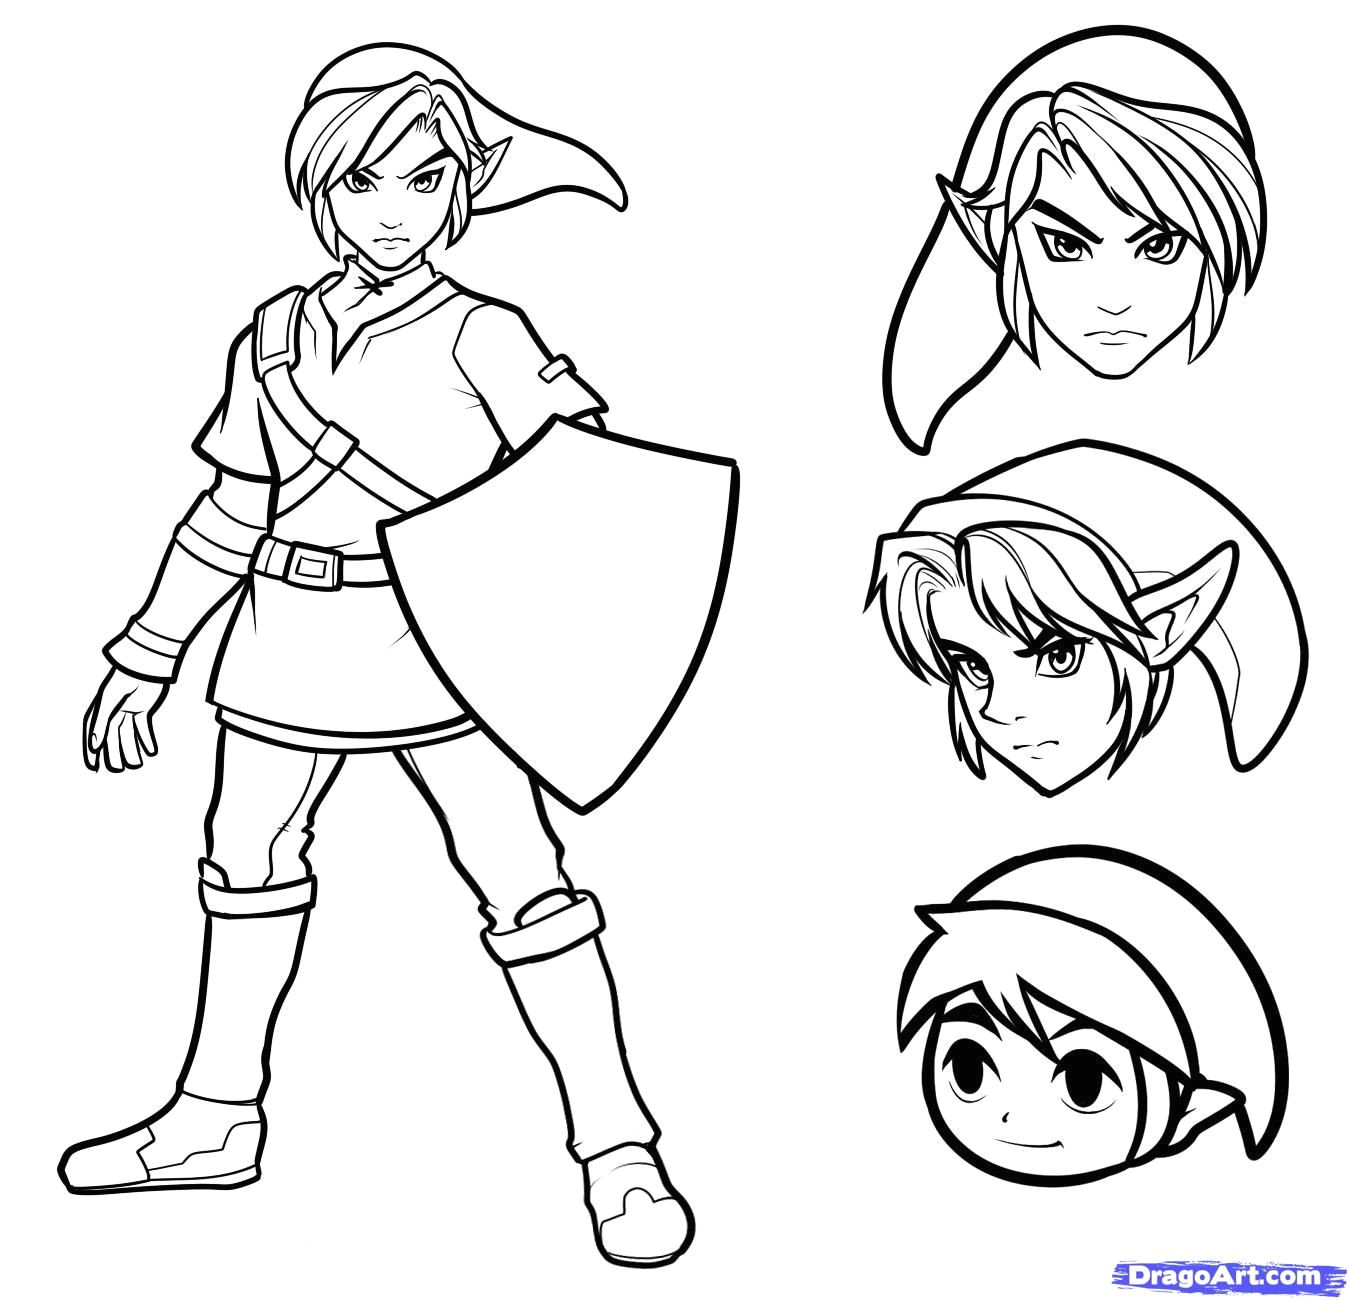 how to draw link easy step 9